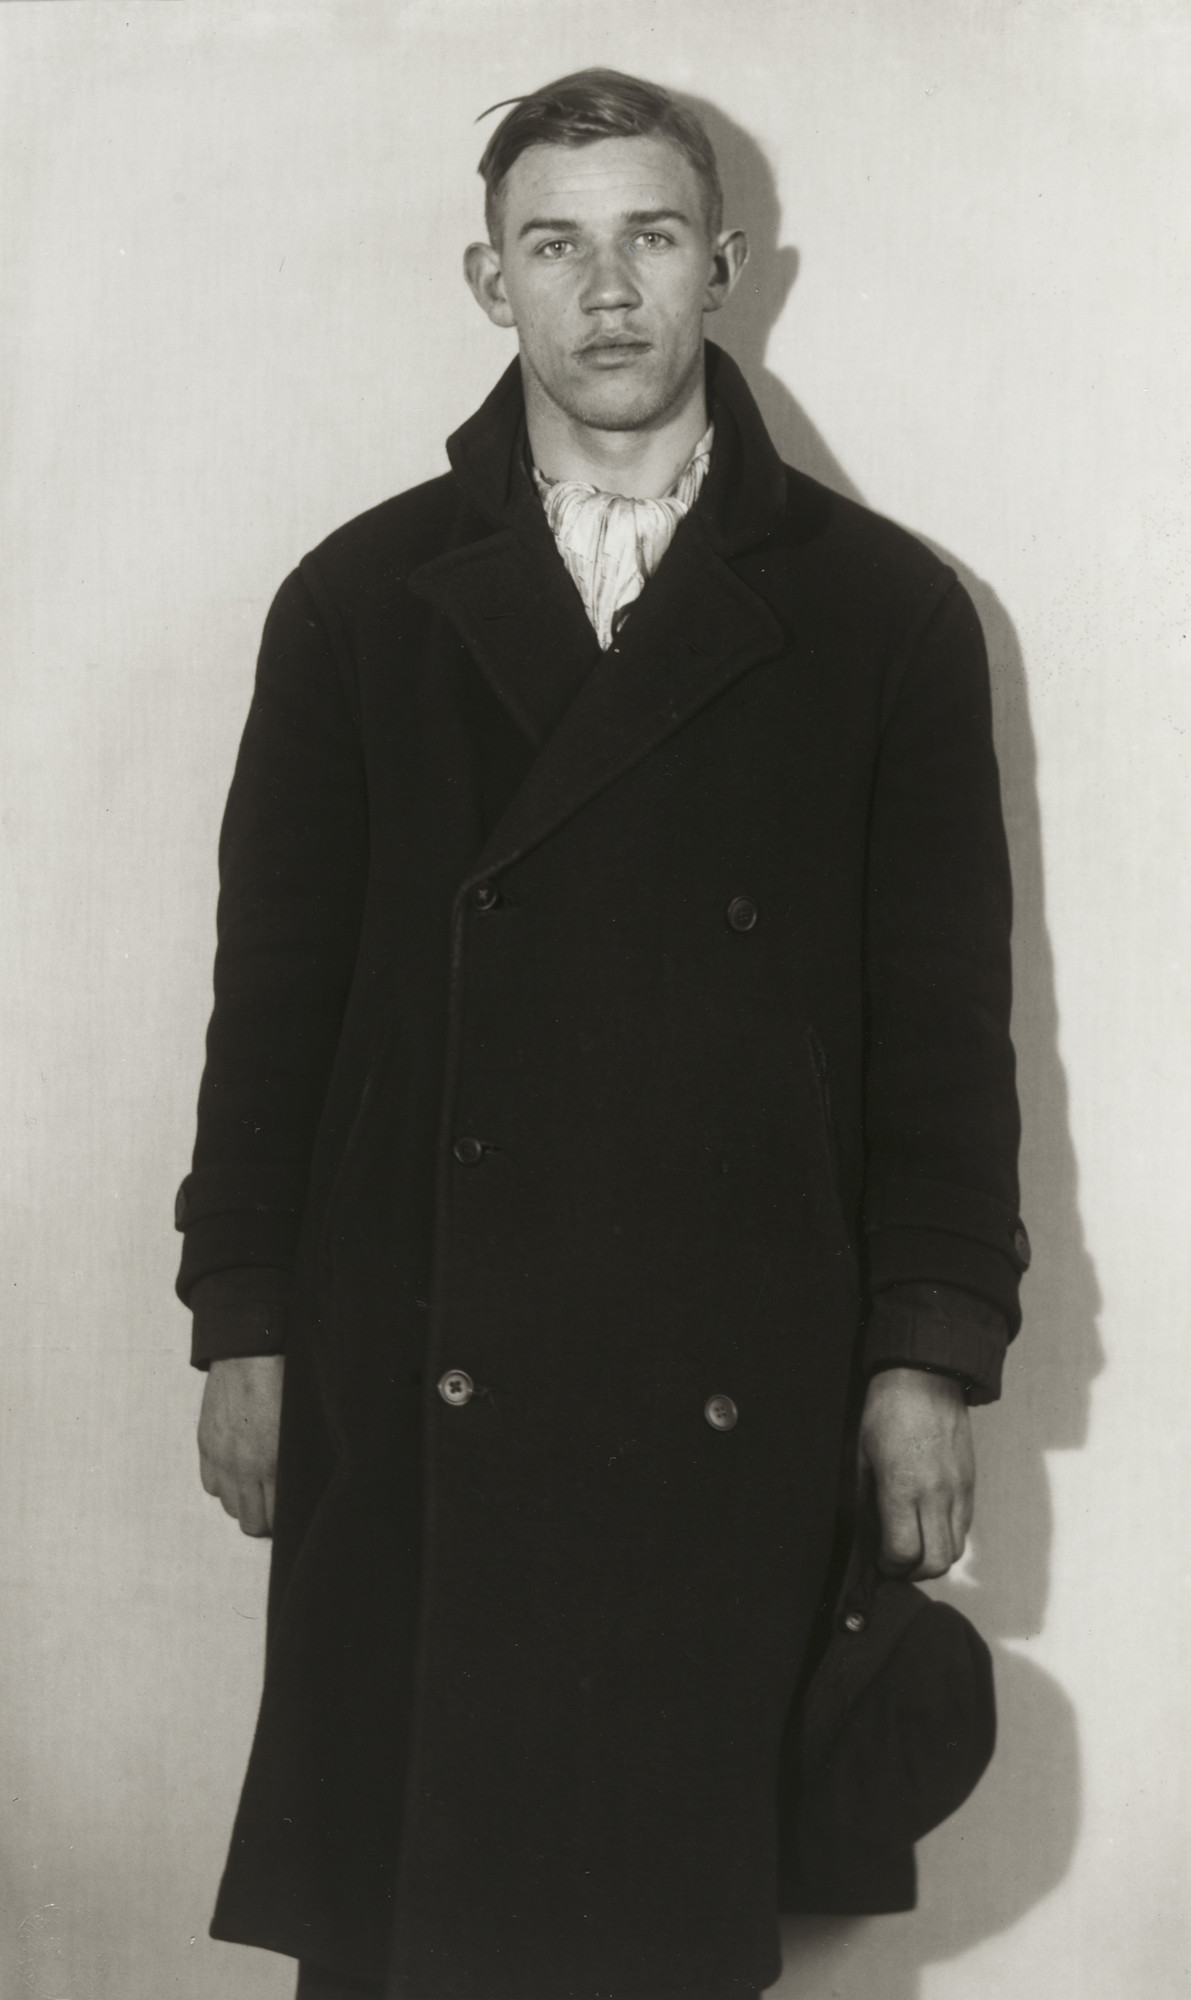 August Sander. Unemployed Miner. 1930